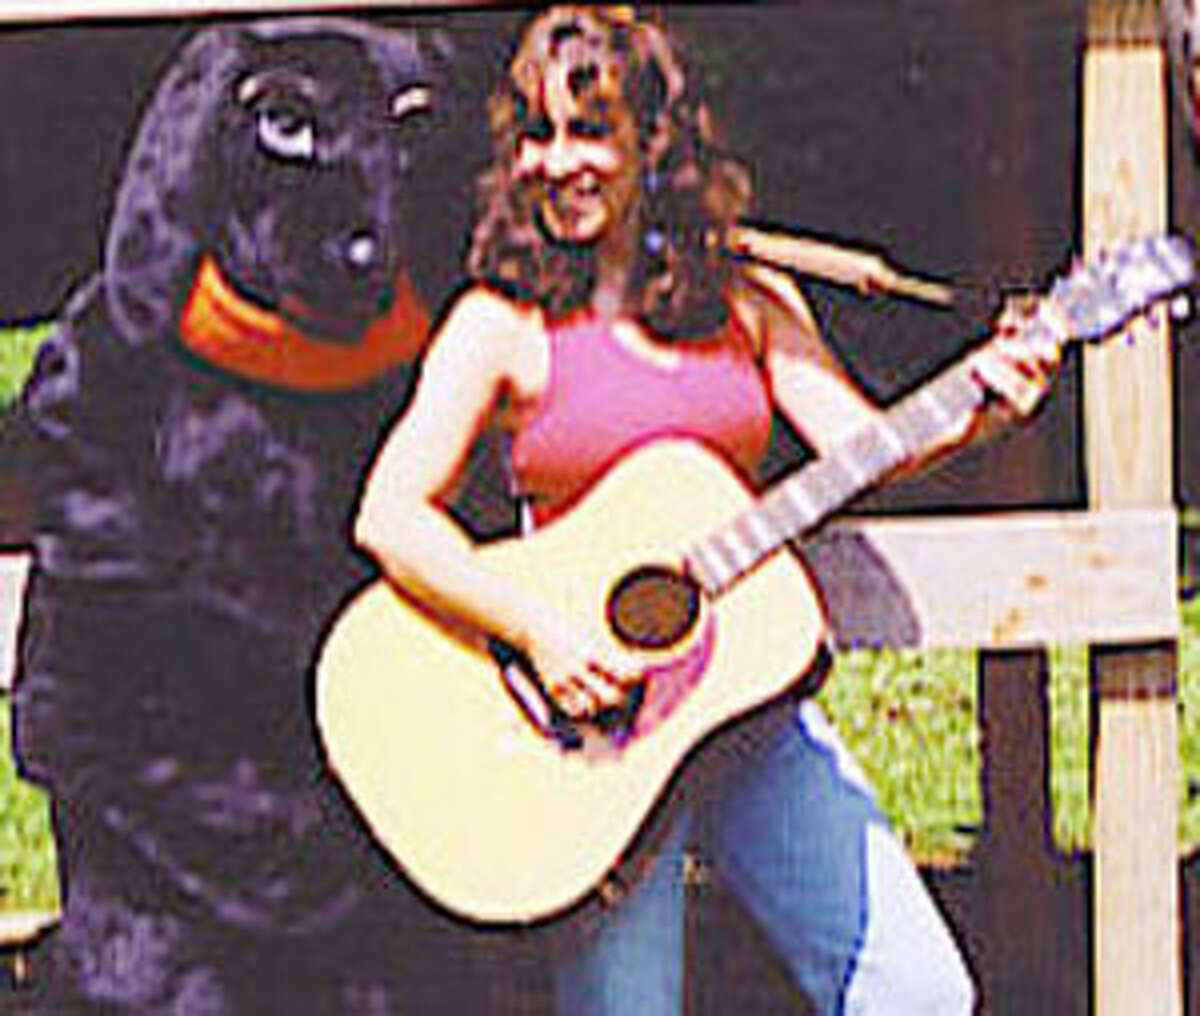 Lynn Lewis and Friends (Photo from LynnLewisAndFriends.com)